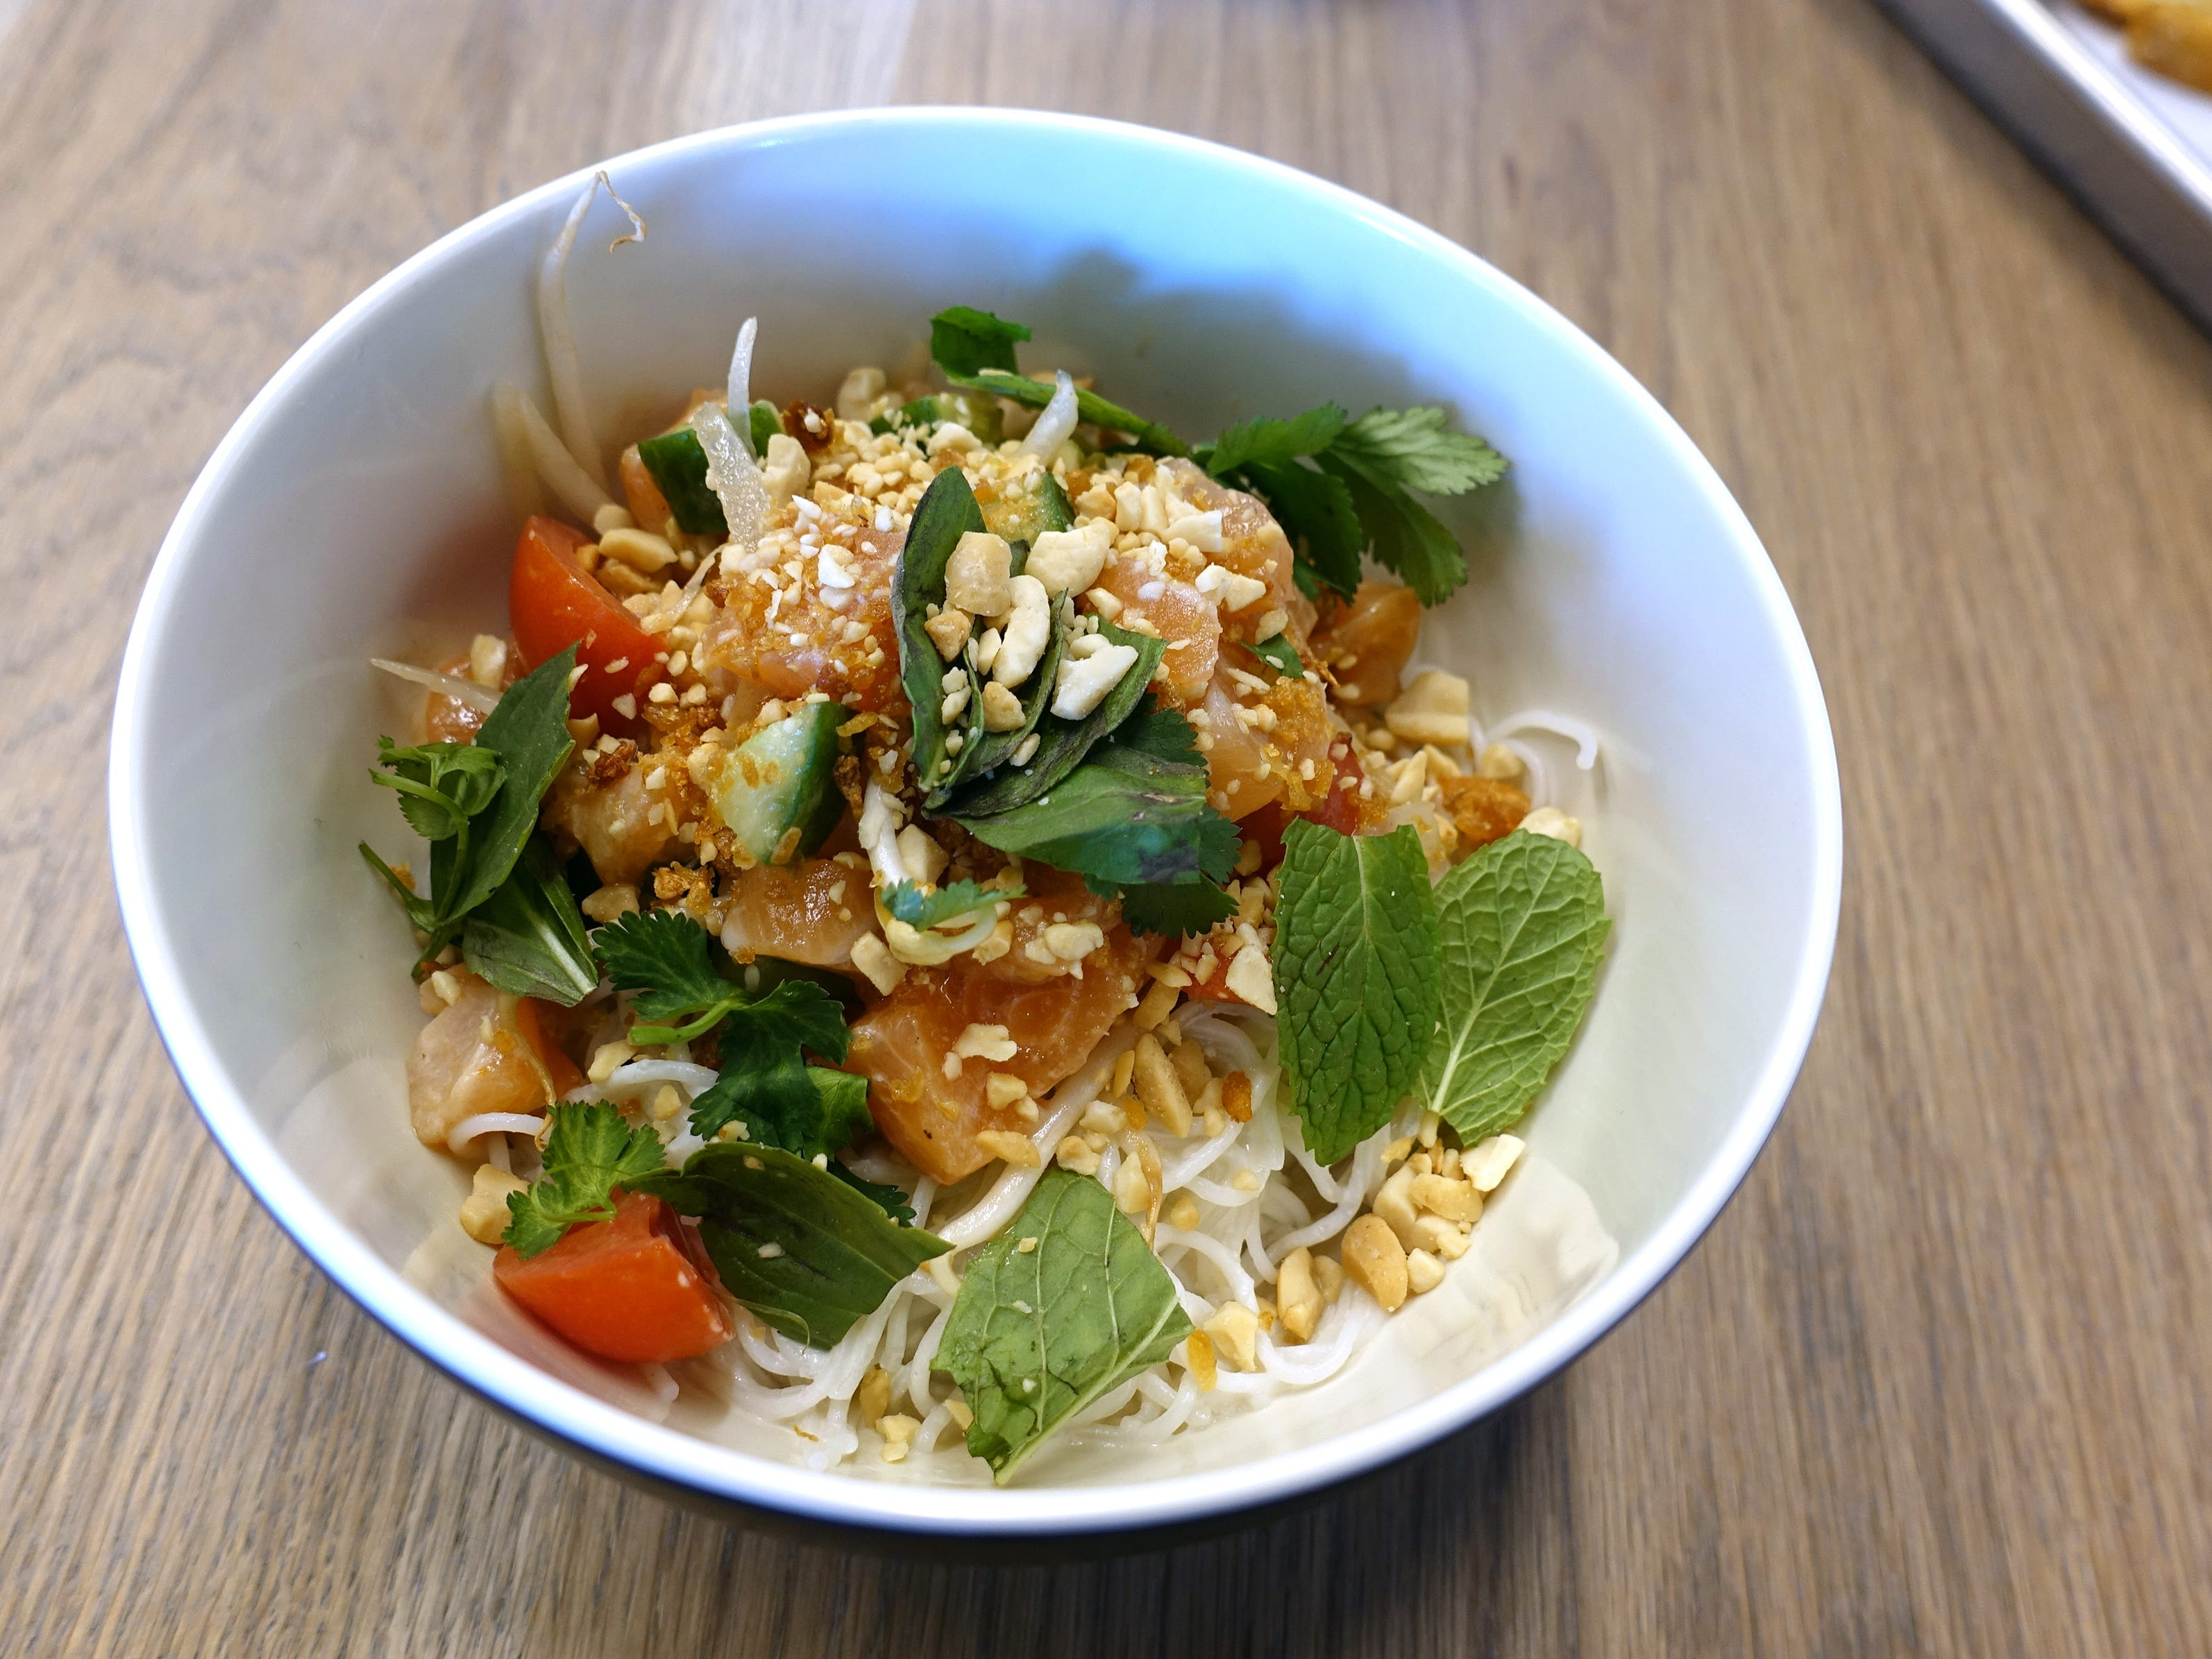 Coconut noodle bowl with salmon poke, rice noodles, cucumber, tomato, sprouts, fried garlic, tamarind vinaigrette, coconut broth and fresh herbs at Chula Seafood Uptown in Phoenix.